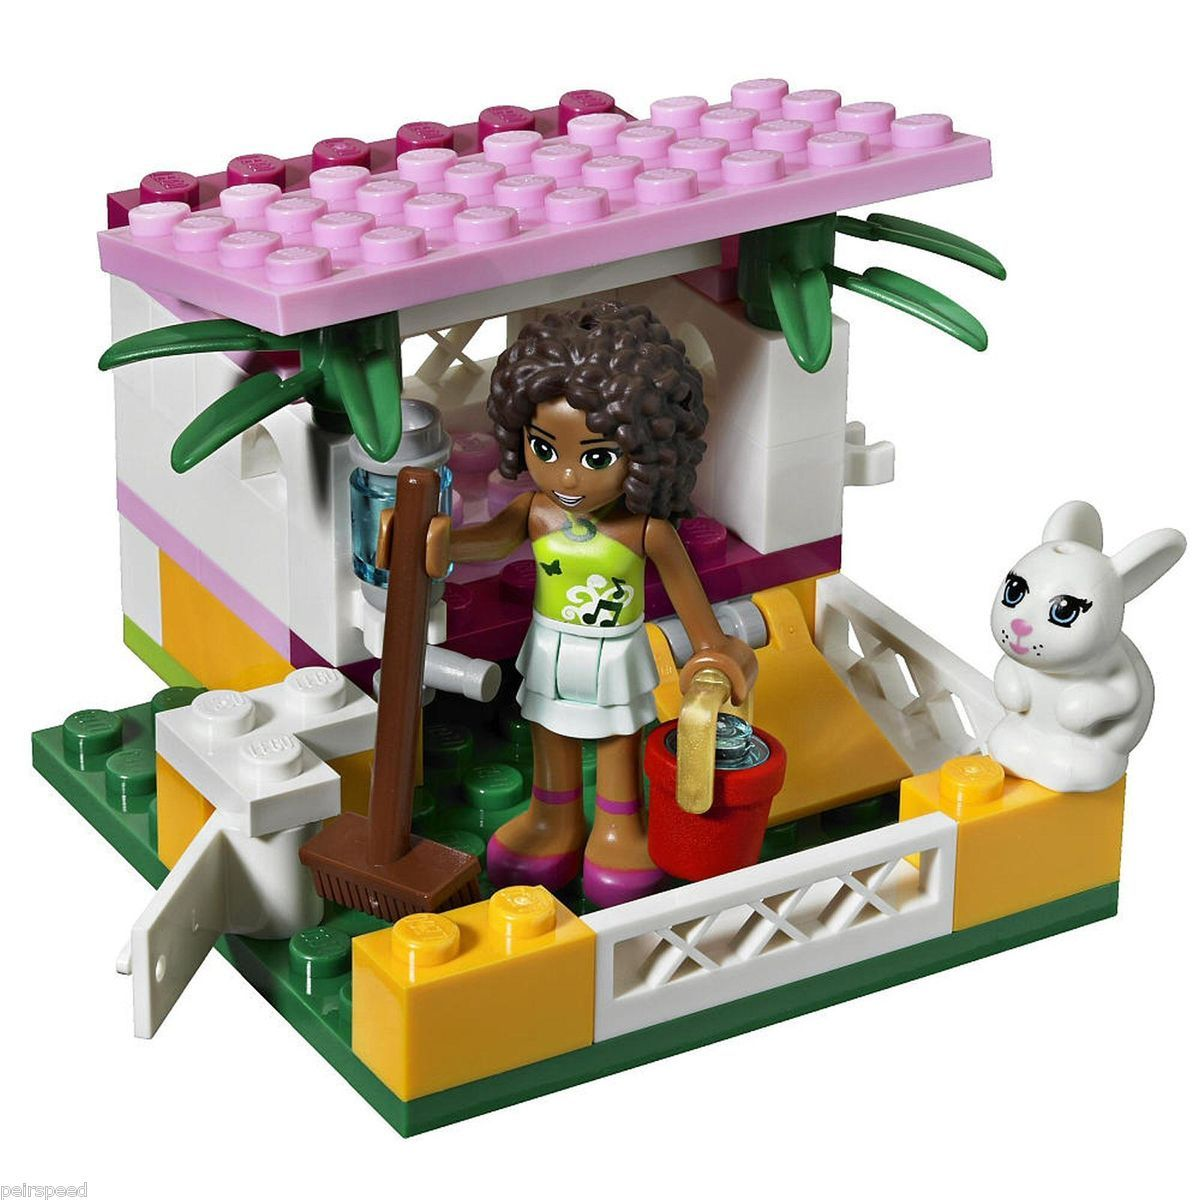 Lego Friends Andreas Bunny House 3938 New Summer 2012 Release Get It